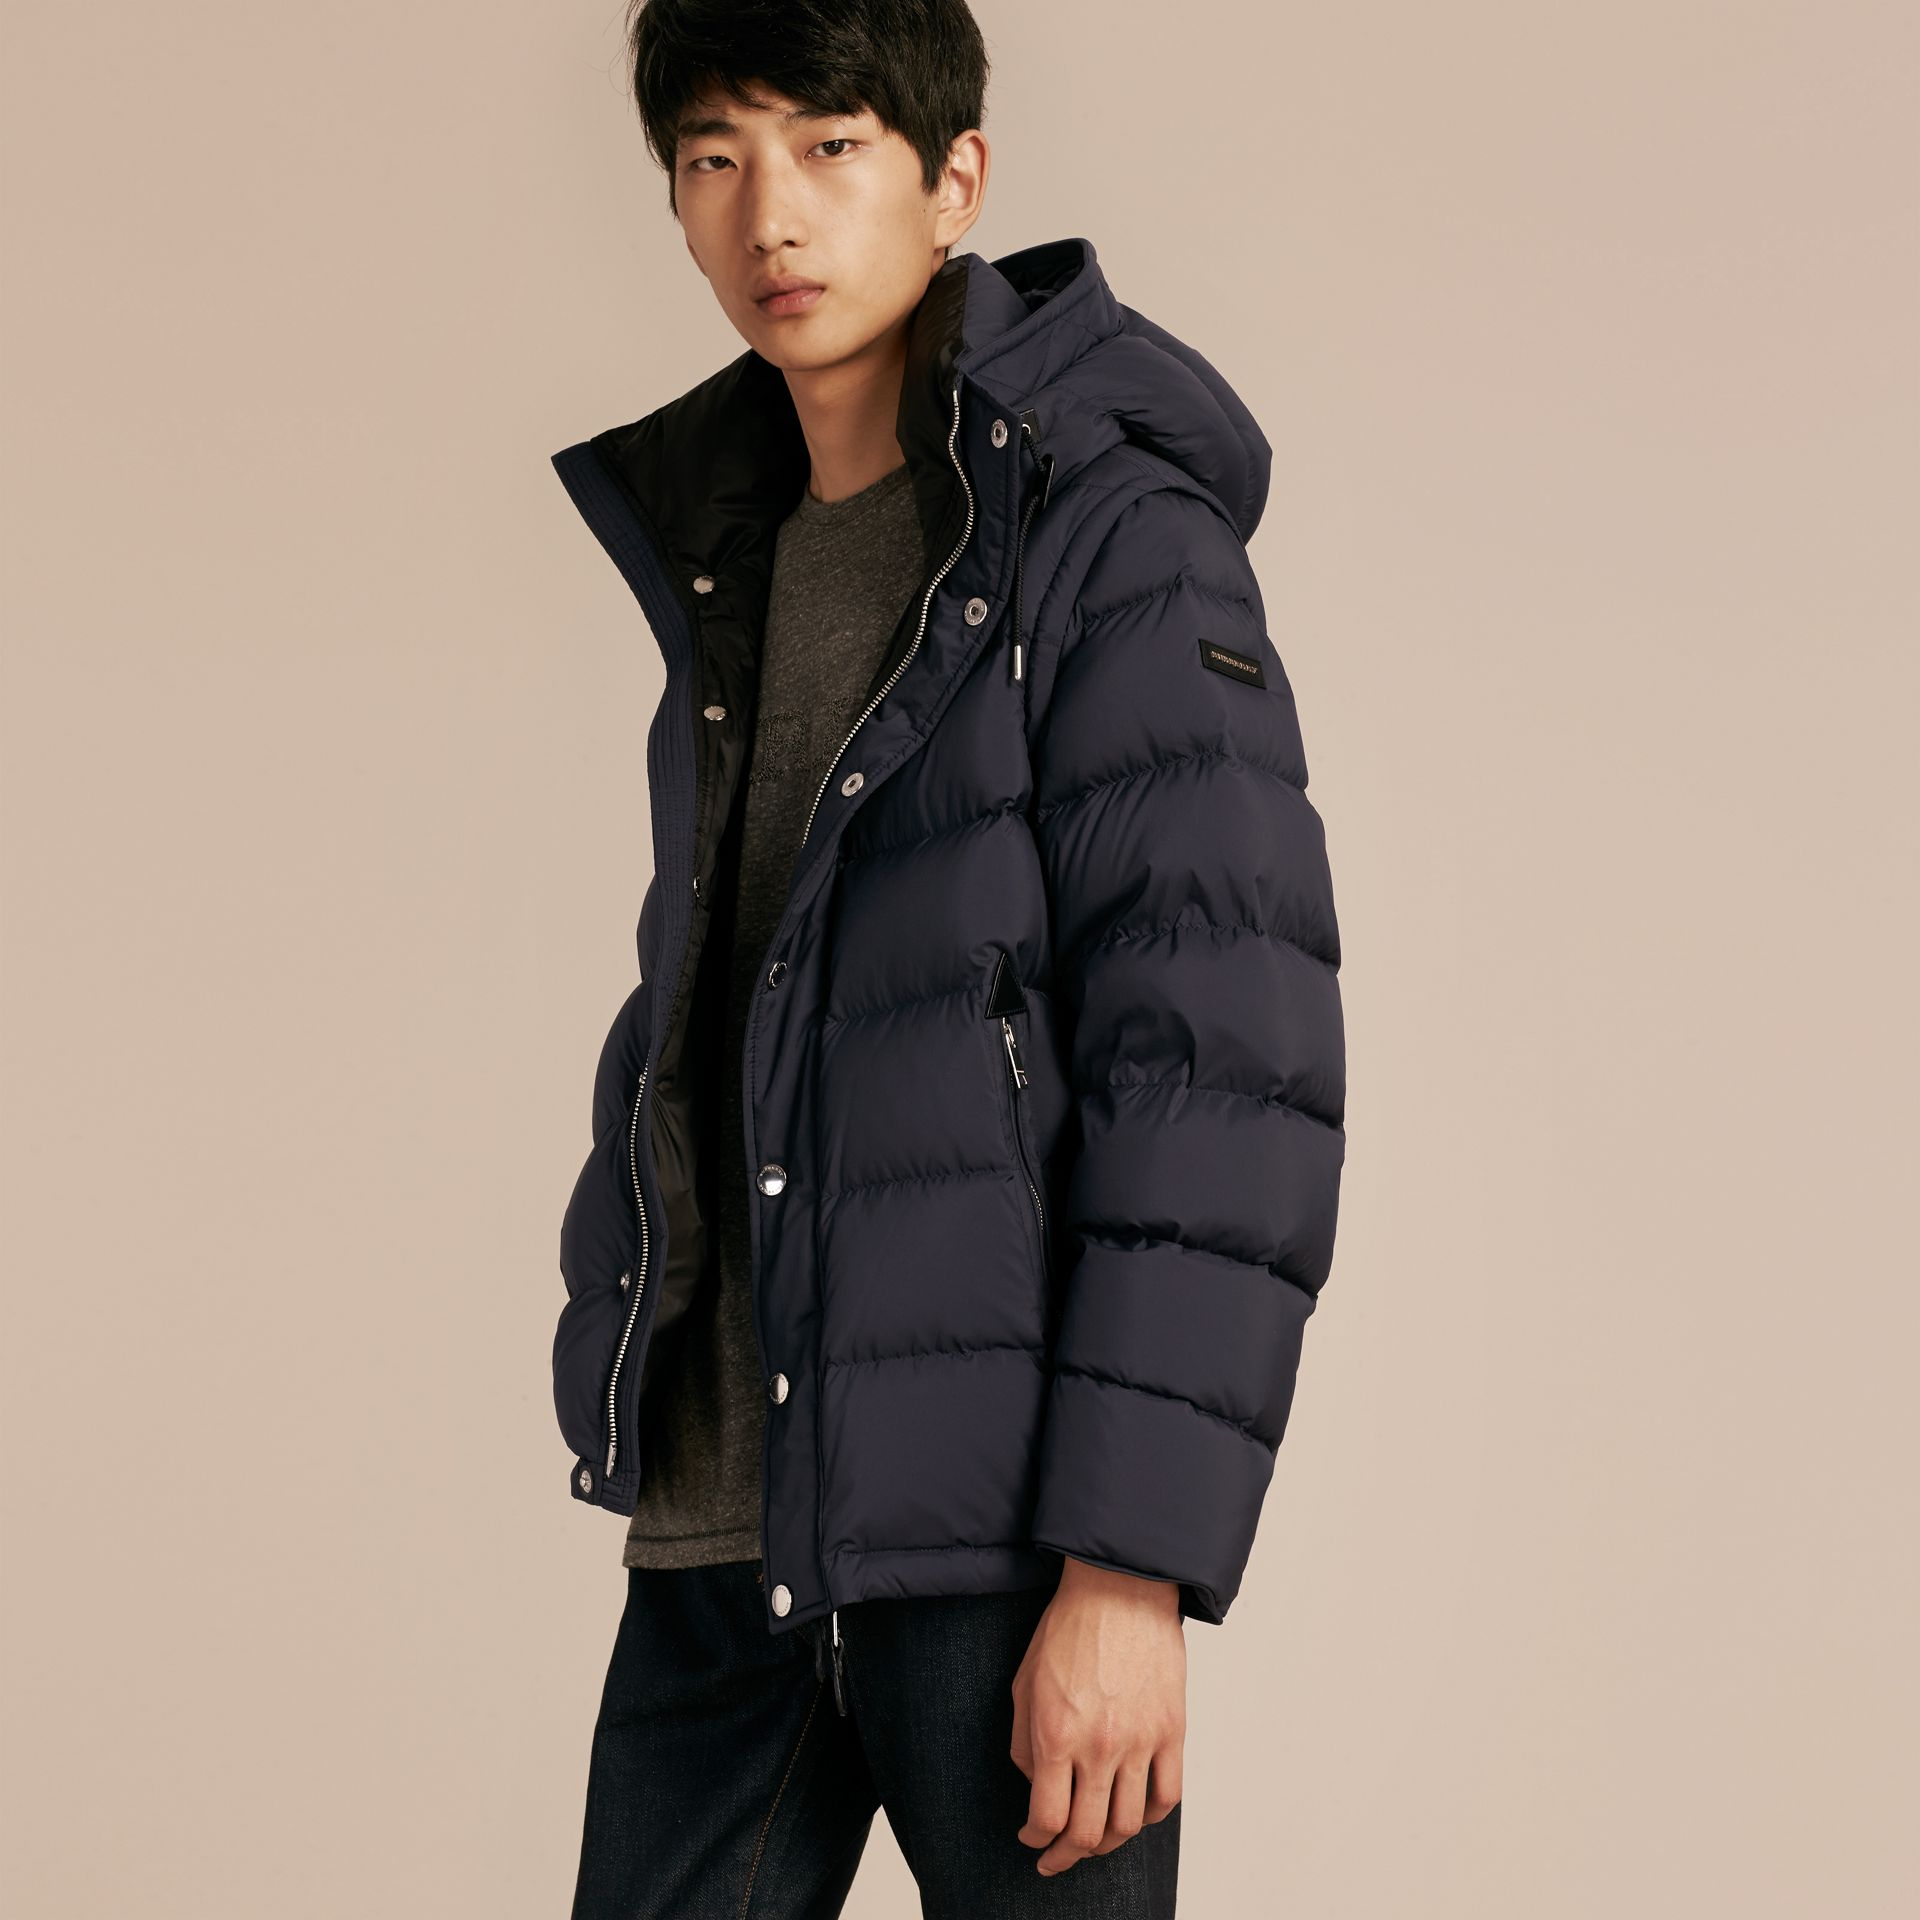 Navy Down-filled Hooded Jacket with Detachable Sleeves Navy - gallery image 7